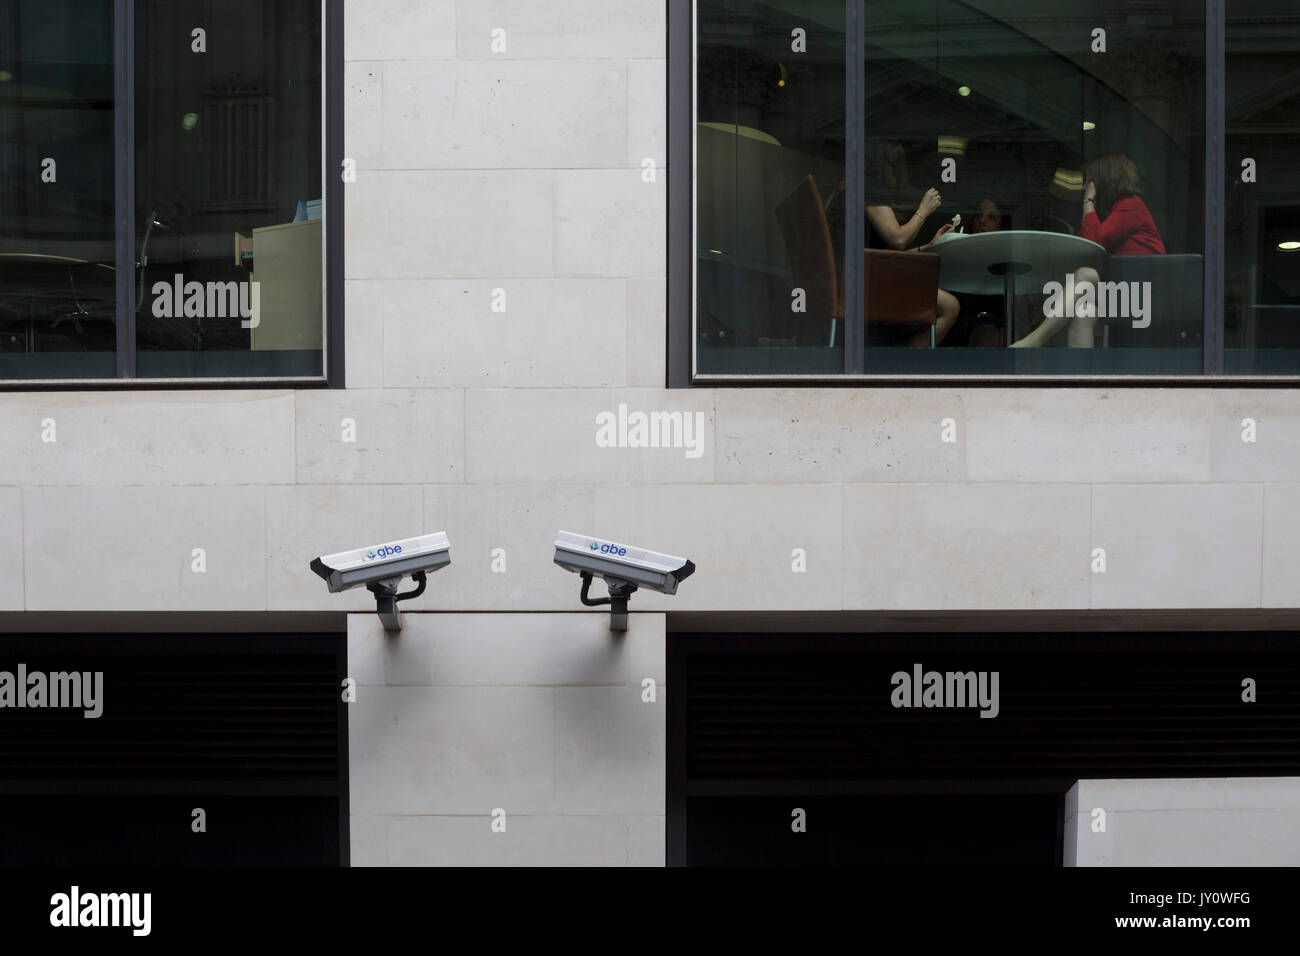 Londoners walk beneath two CCTV cameras in the City of London, one of the most-watched  on 11th August, 2017, in Stock Photo